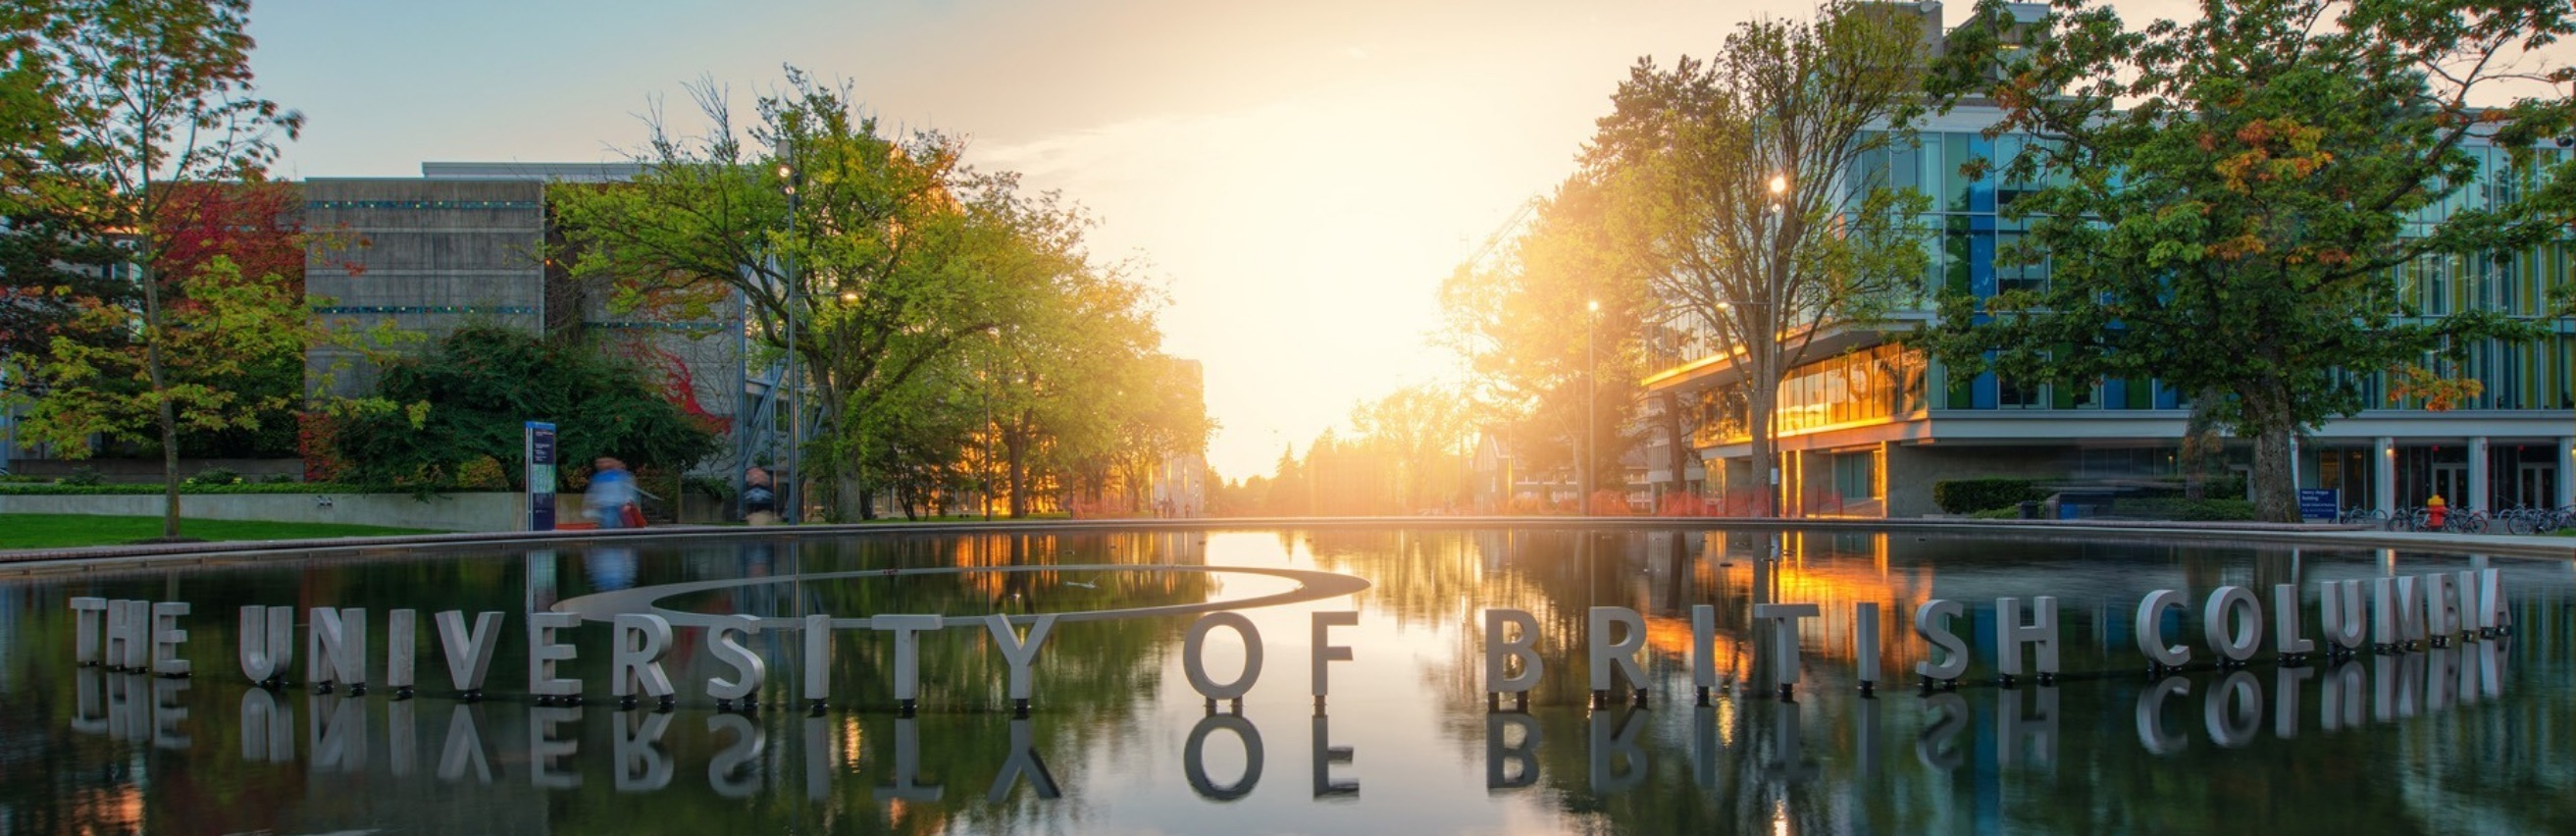 UBC Lake Sign